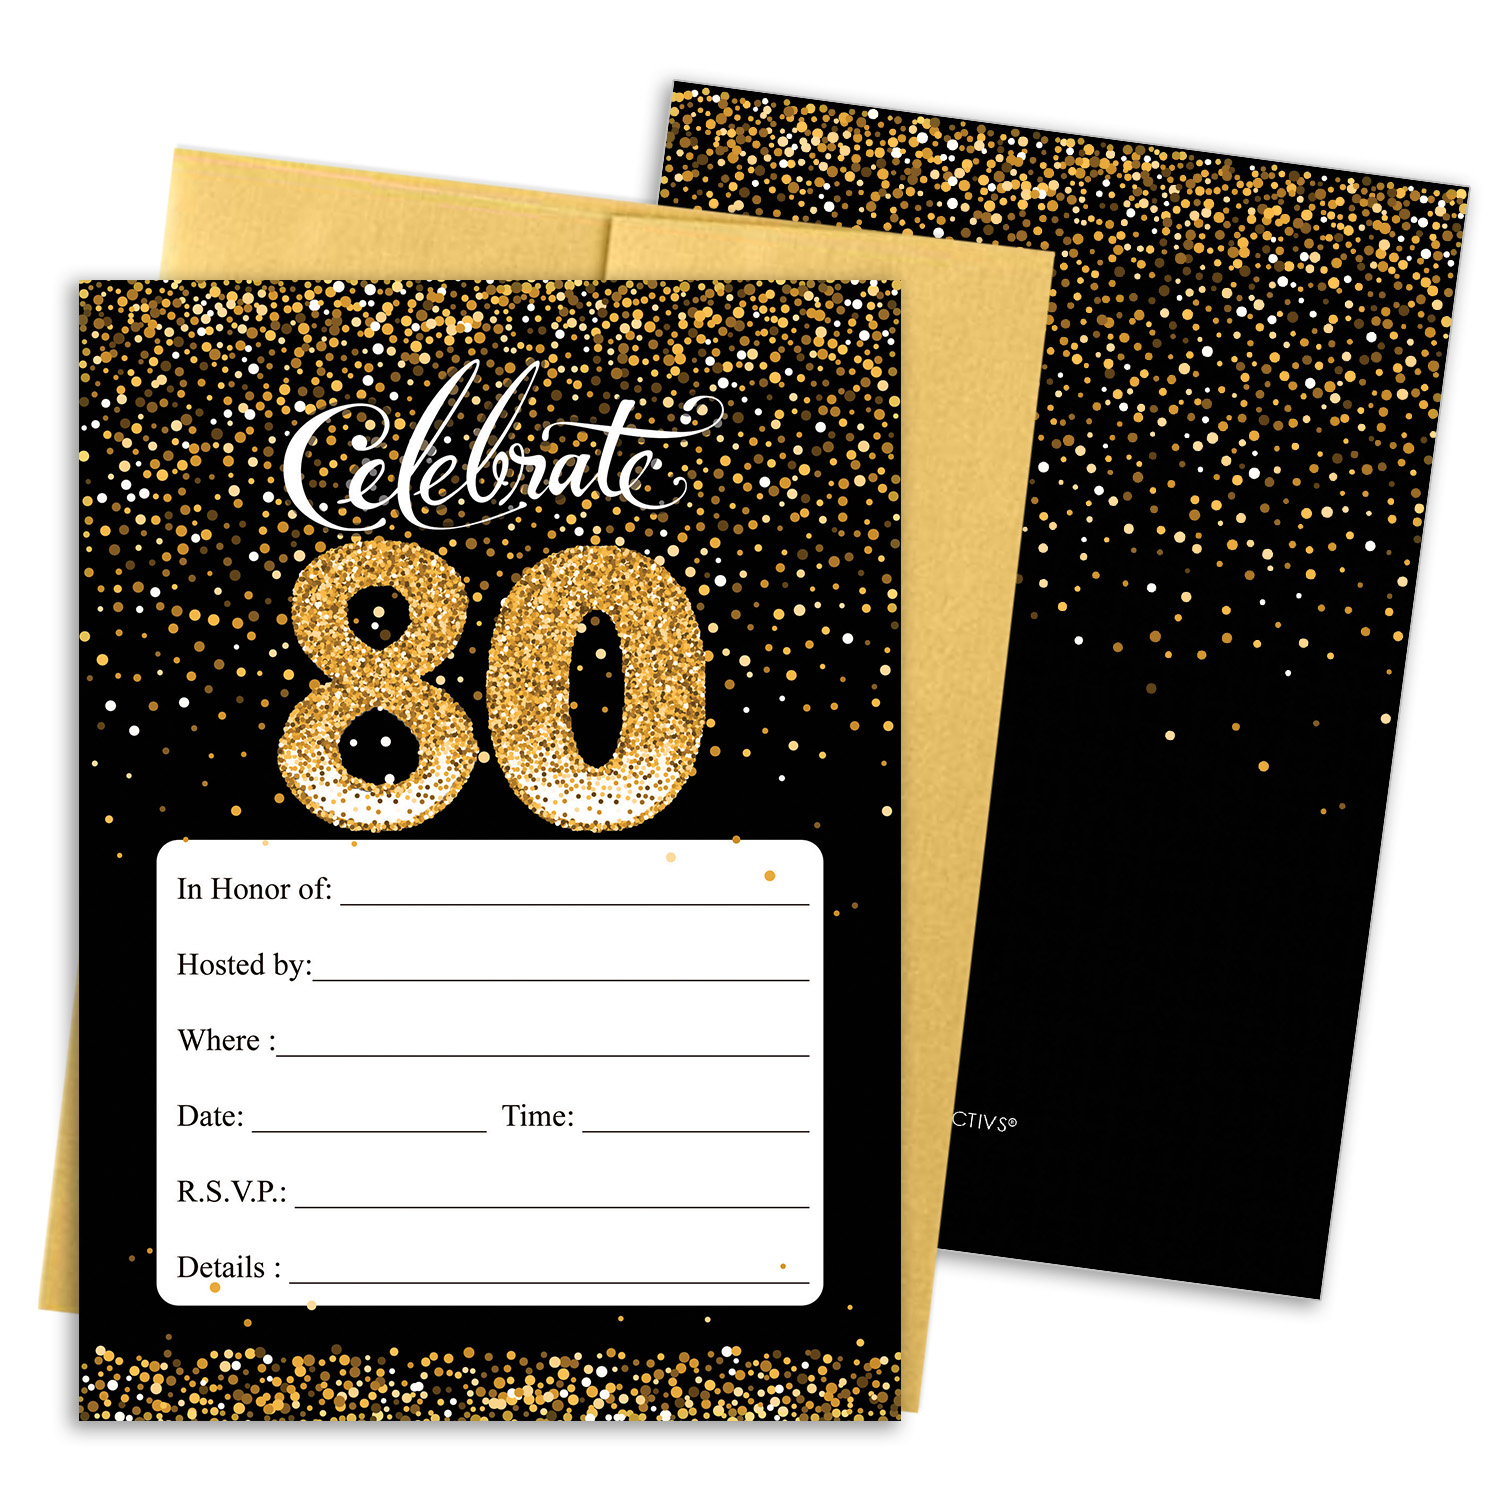 Black and Gold 80th Birthday Party Invitation Cards with Envelopes - 10  Count - Walmart.com - Walmart.com